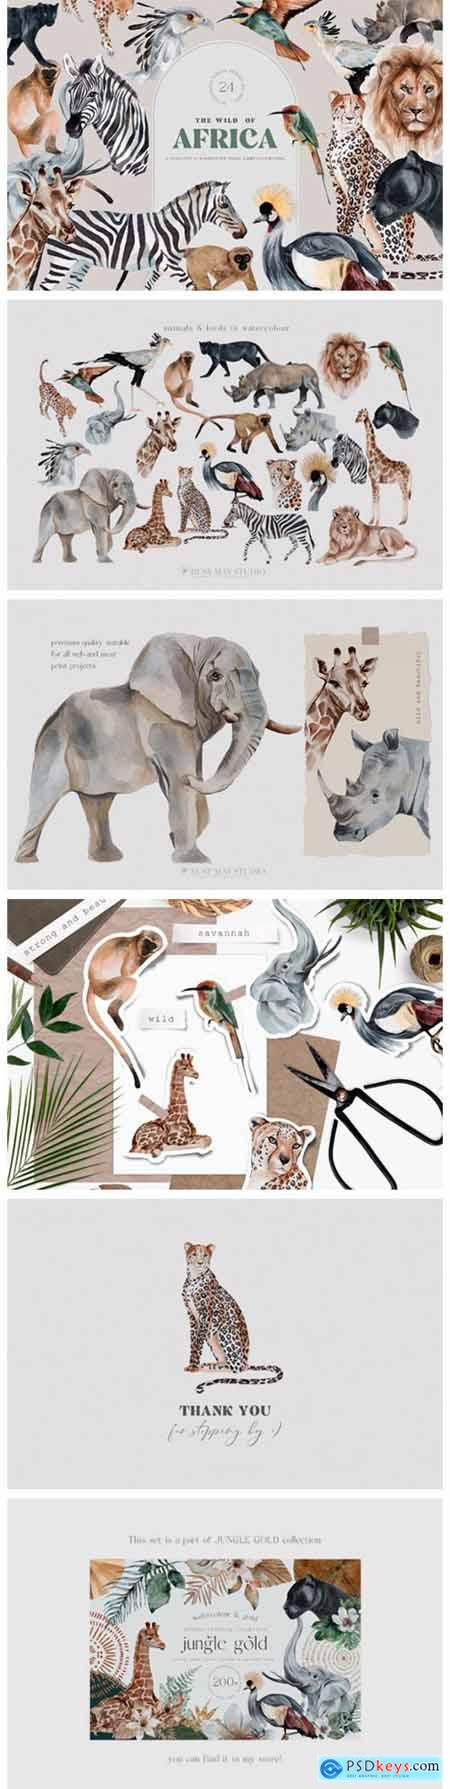 Wild Animals of Africa Illustrations PNG 10996275